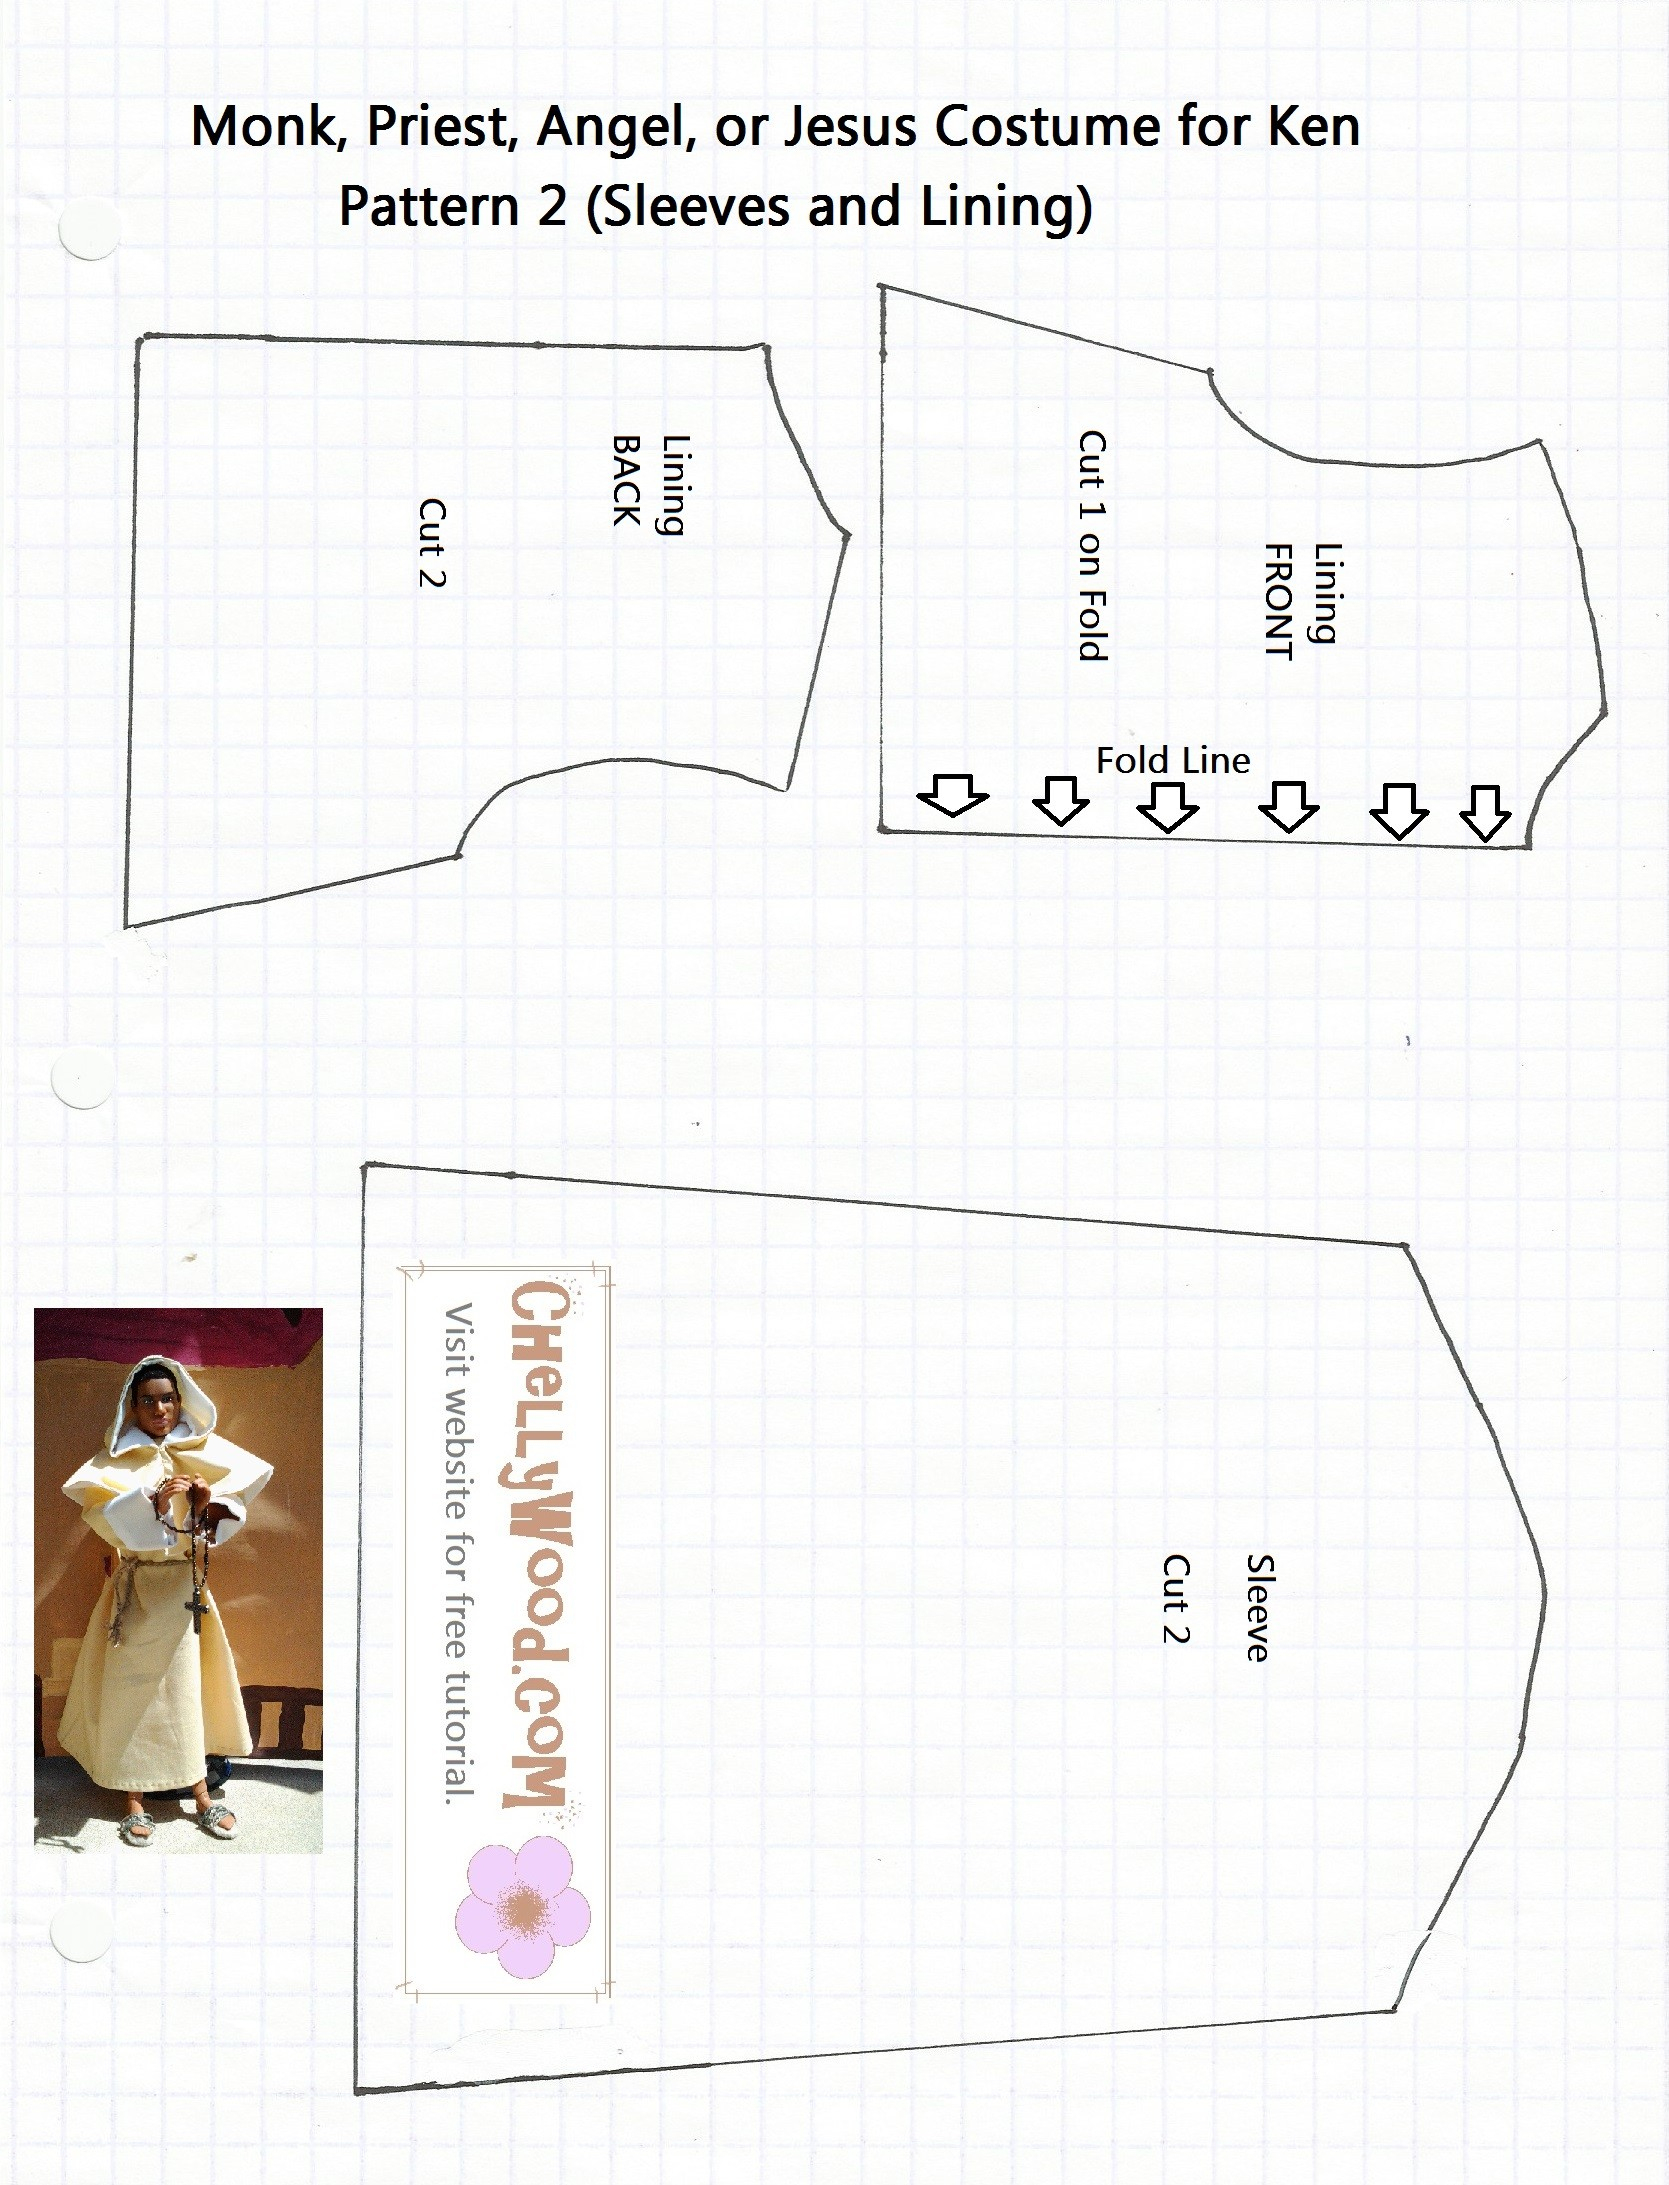 Wedding Dress Patterns Free Awesome Free Printable Barbie Doll - Free Printable Patterns For Sewing Doll Clothes